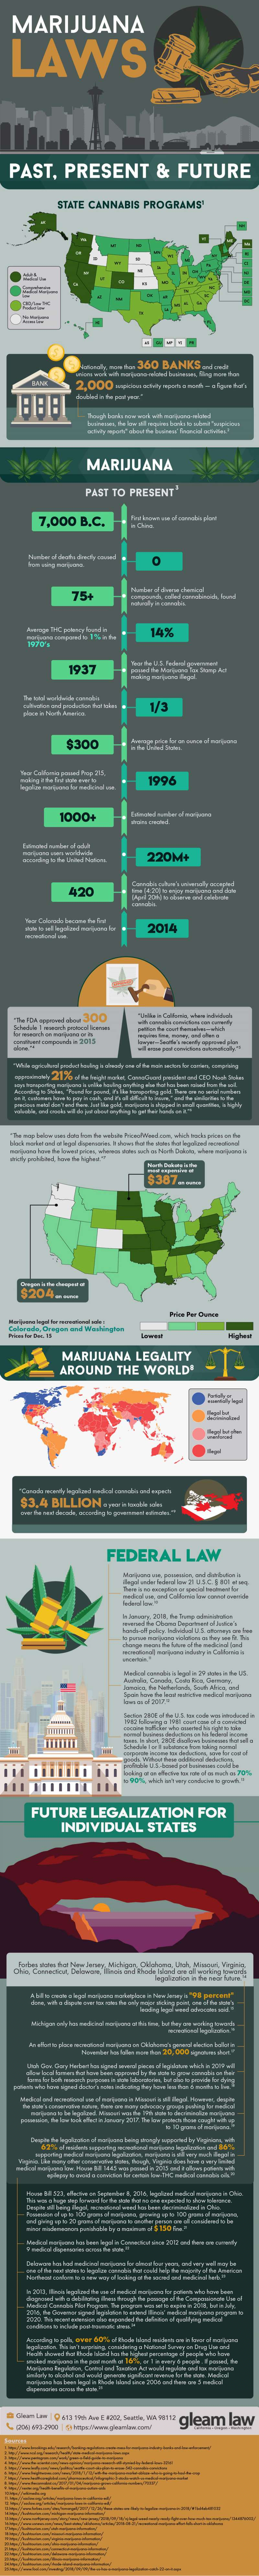 marijuana laws, cannabis laws, Infographic